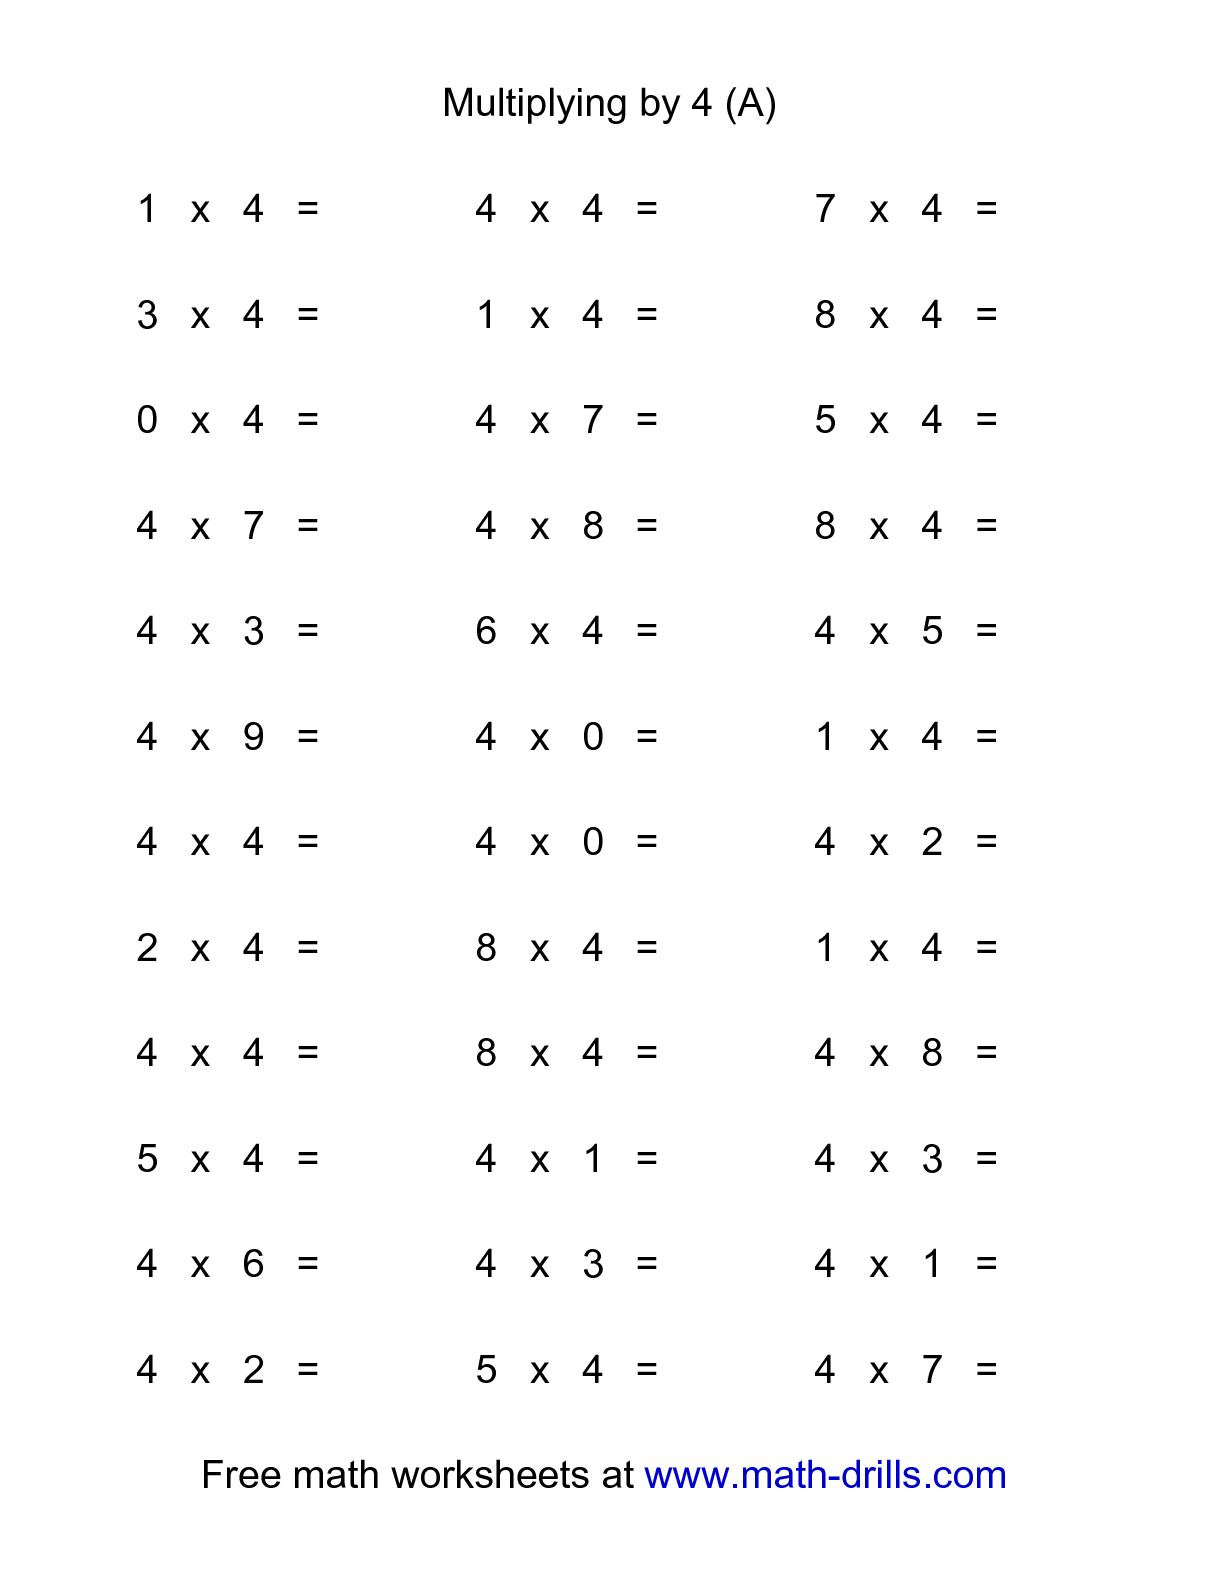 36 Horizontal Multiplication Facts Questions 4 By 0 9 A Worksheets